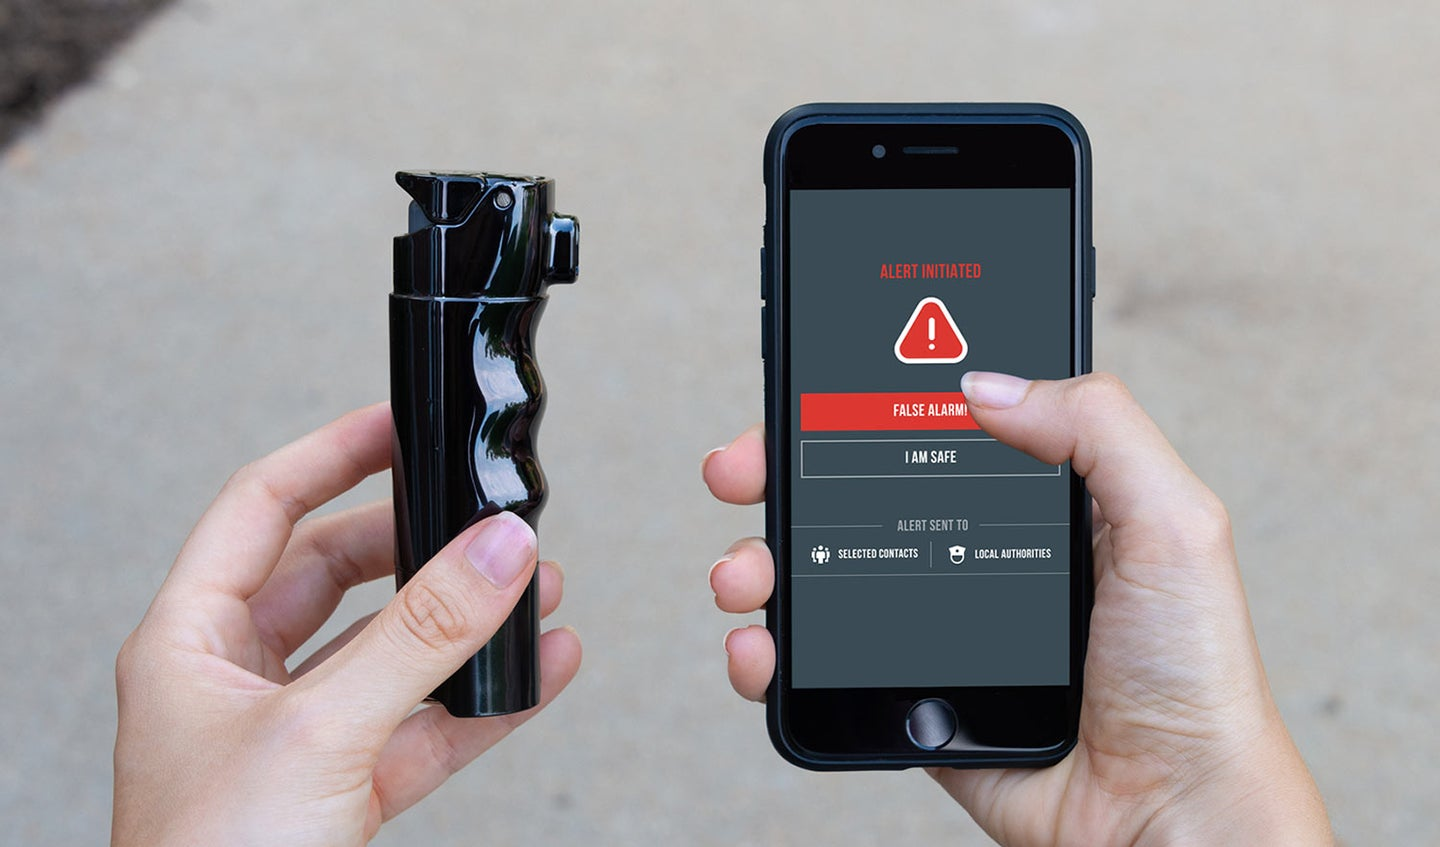 Two hands holding a device and a cell phone.